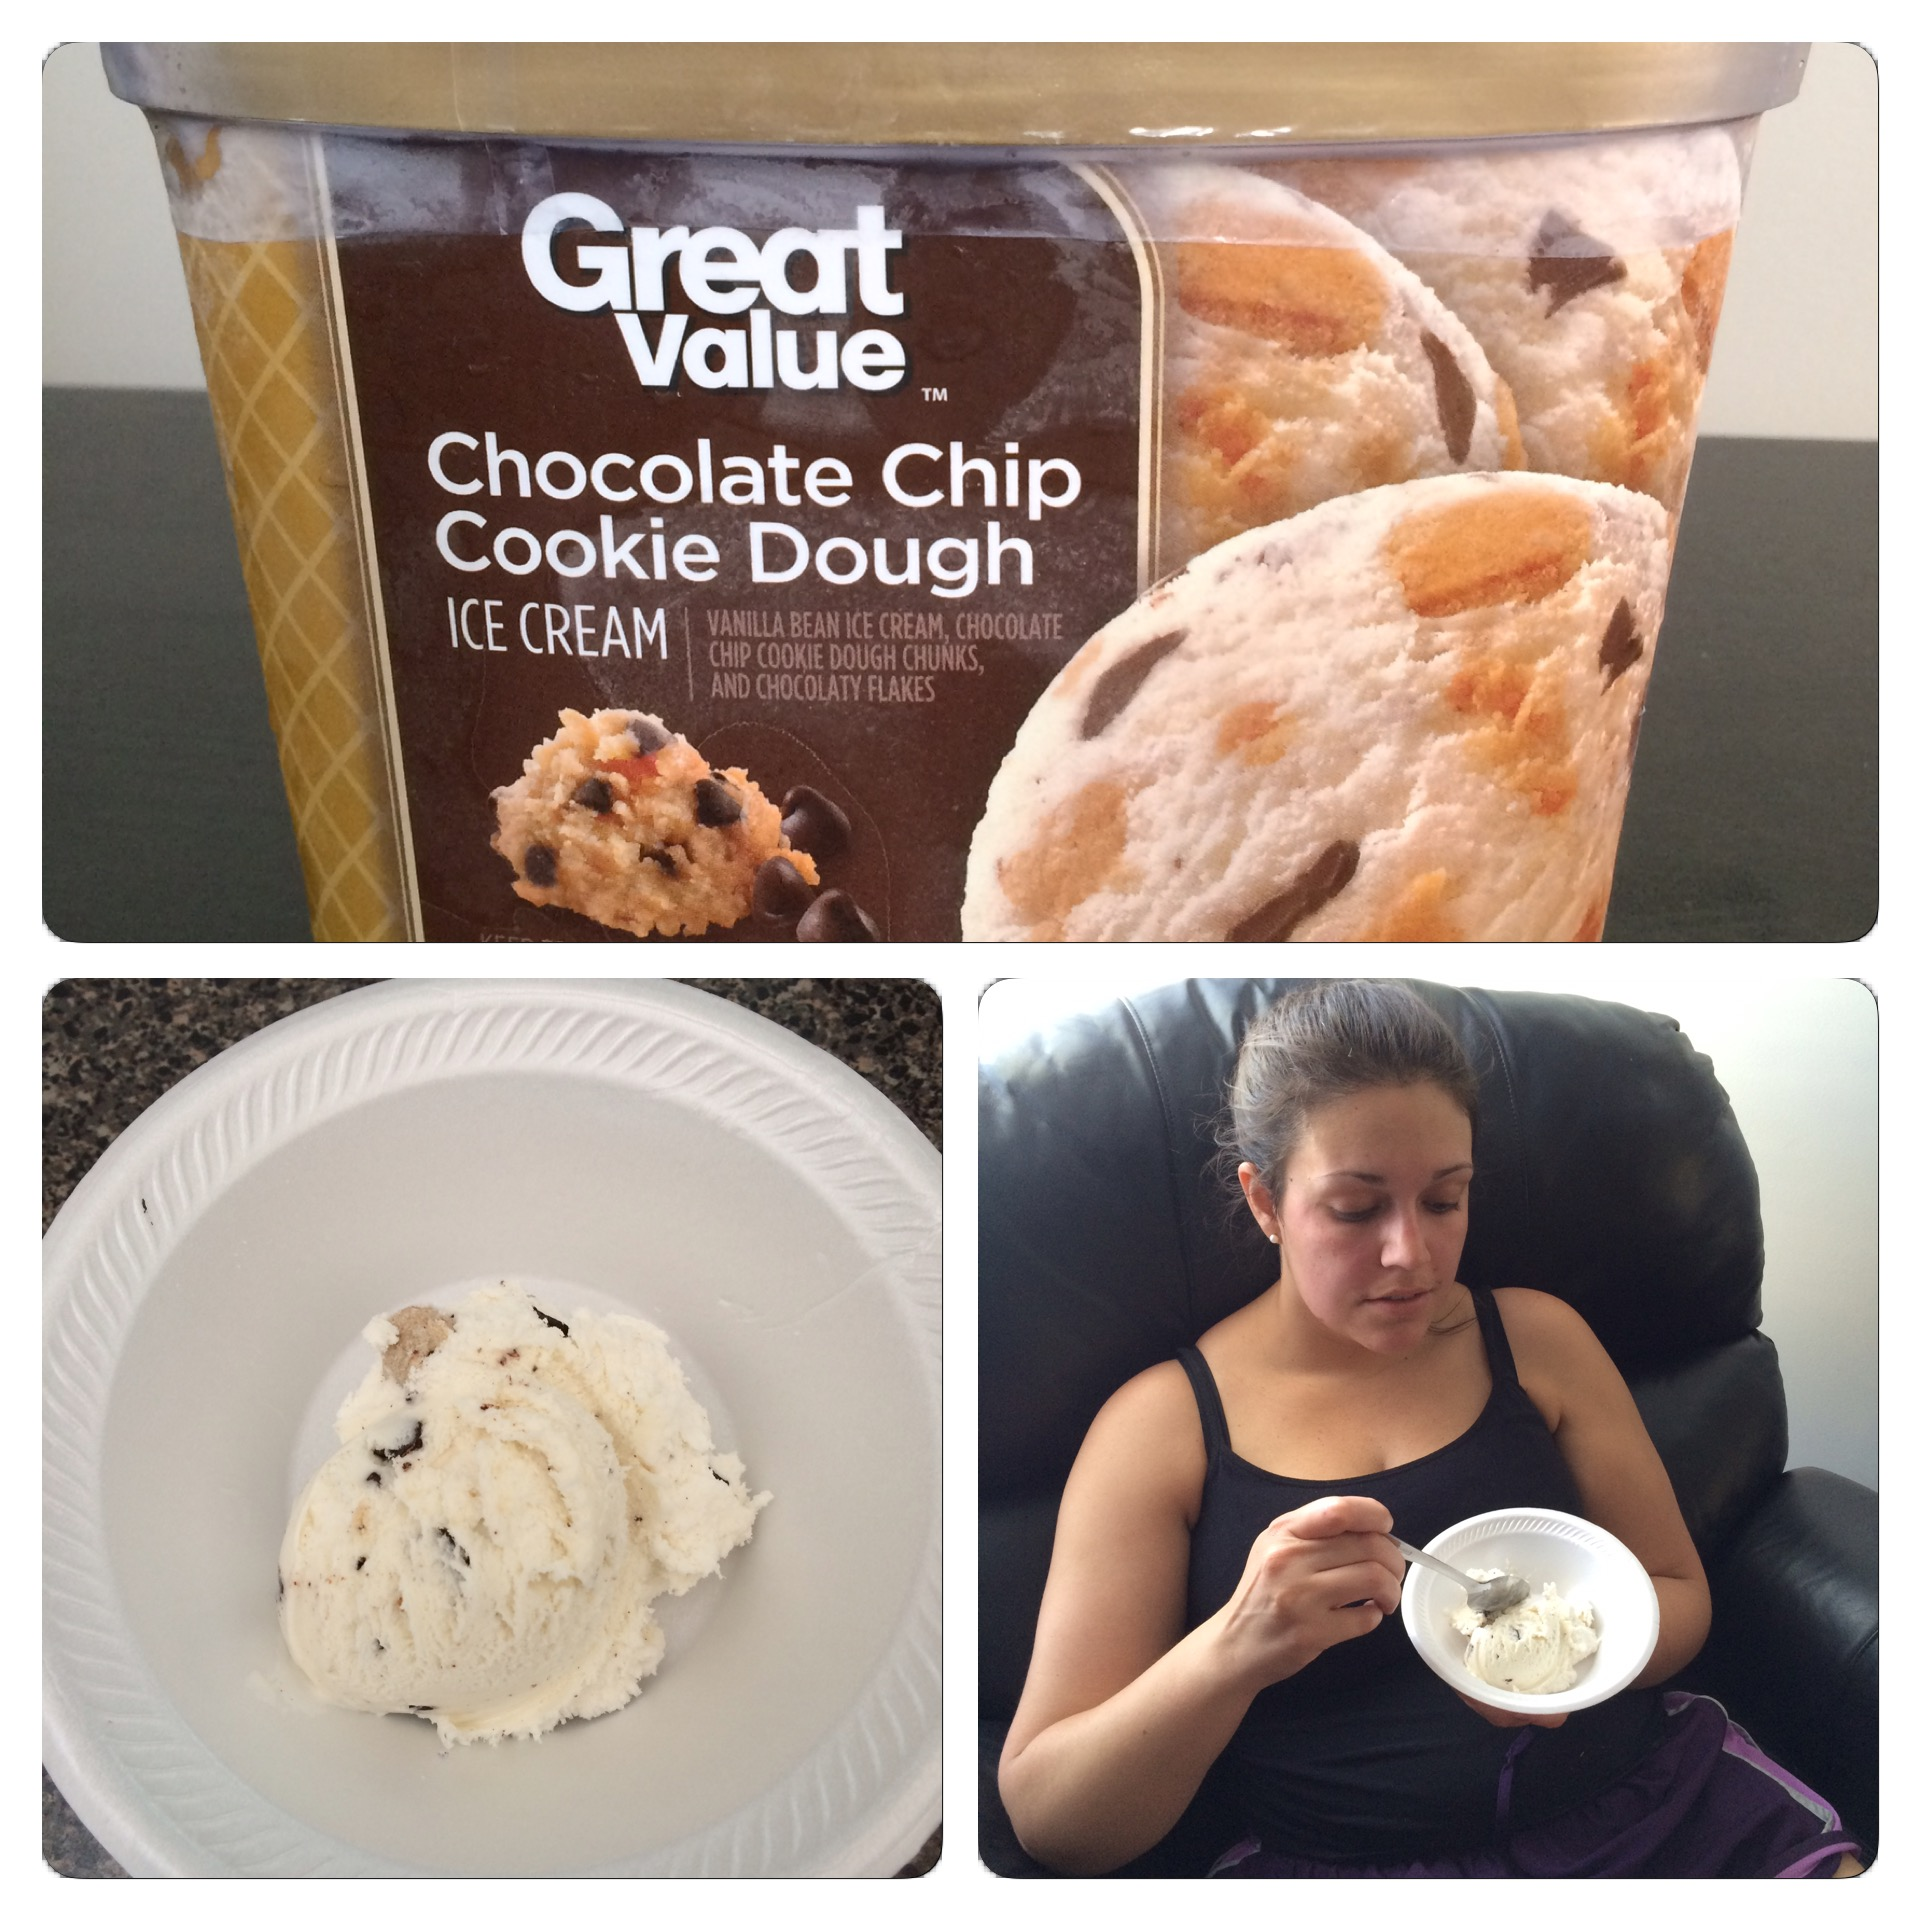 Believe it or not, the Walmart Great Value brand ended up winning the blind taste test.